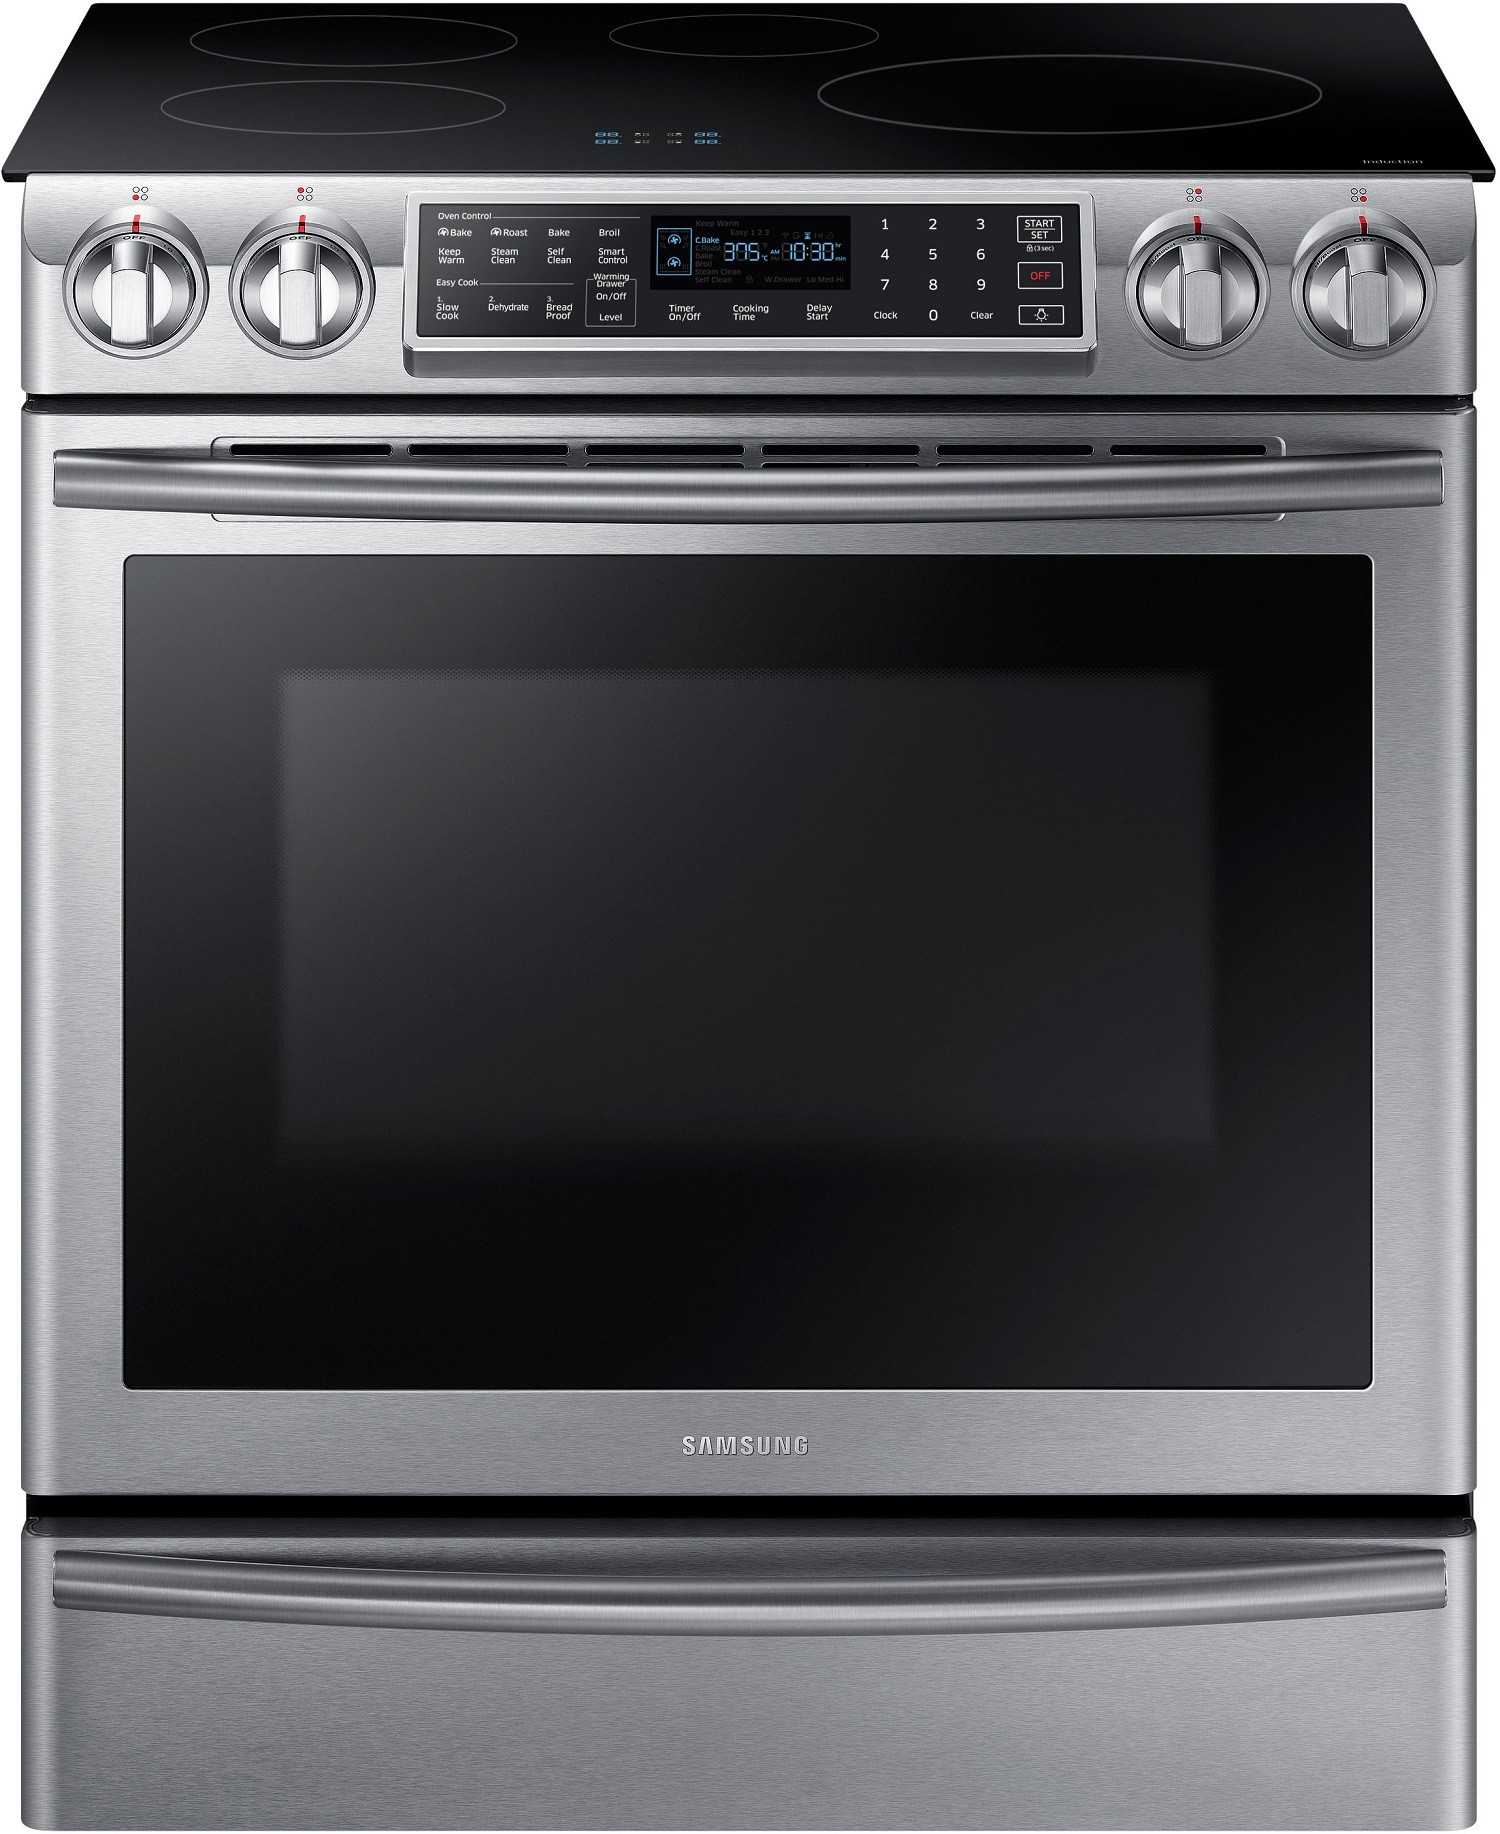 Samsung Ne58k9560ws 30 Inch Induction Slide In Range With 5 8 Cu Ft Dual Fan Convection Oven Virtual Flame Technology Wifi Connectivity Delay Start Steam Induction Range Convection Range Induction